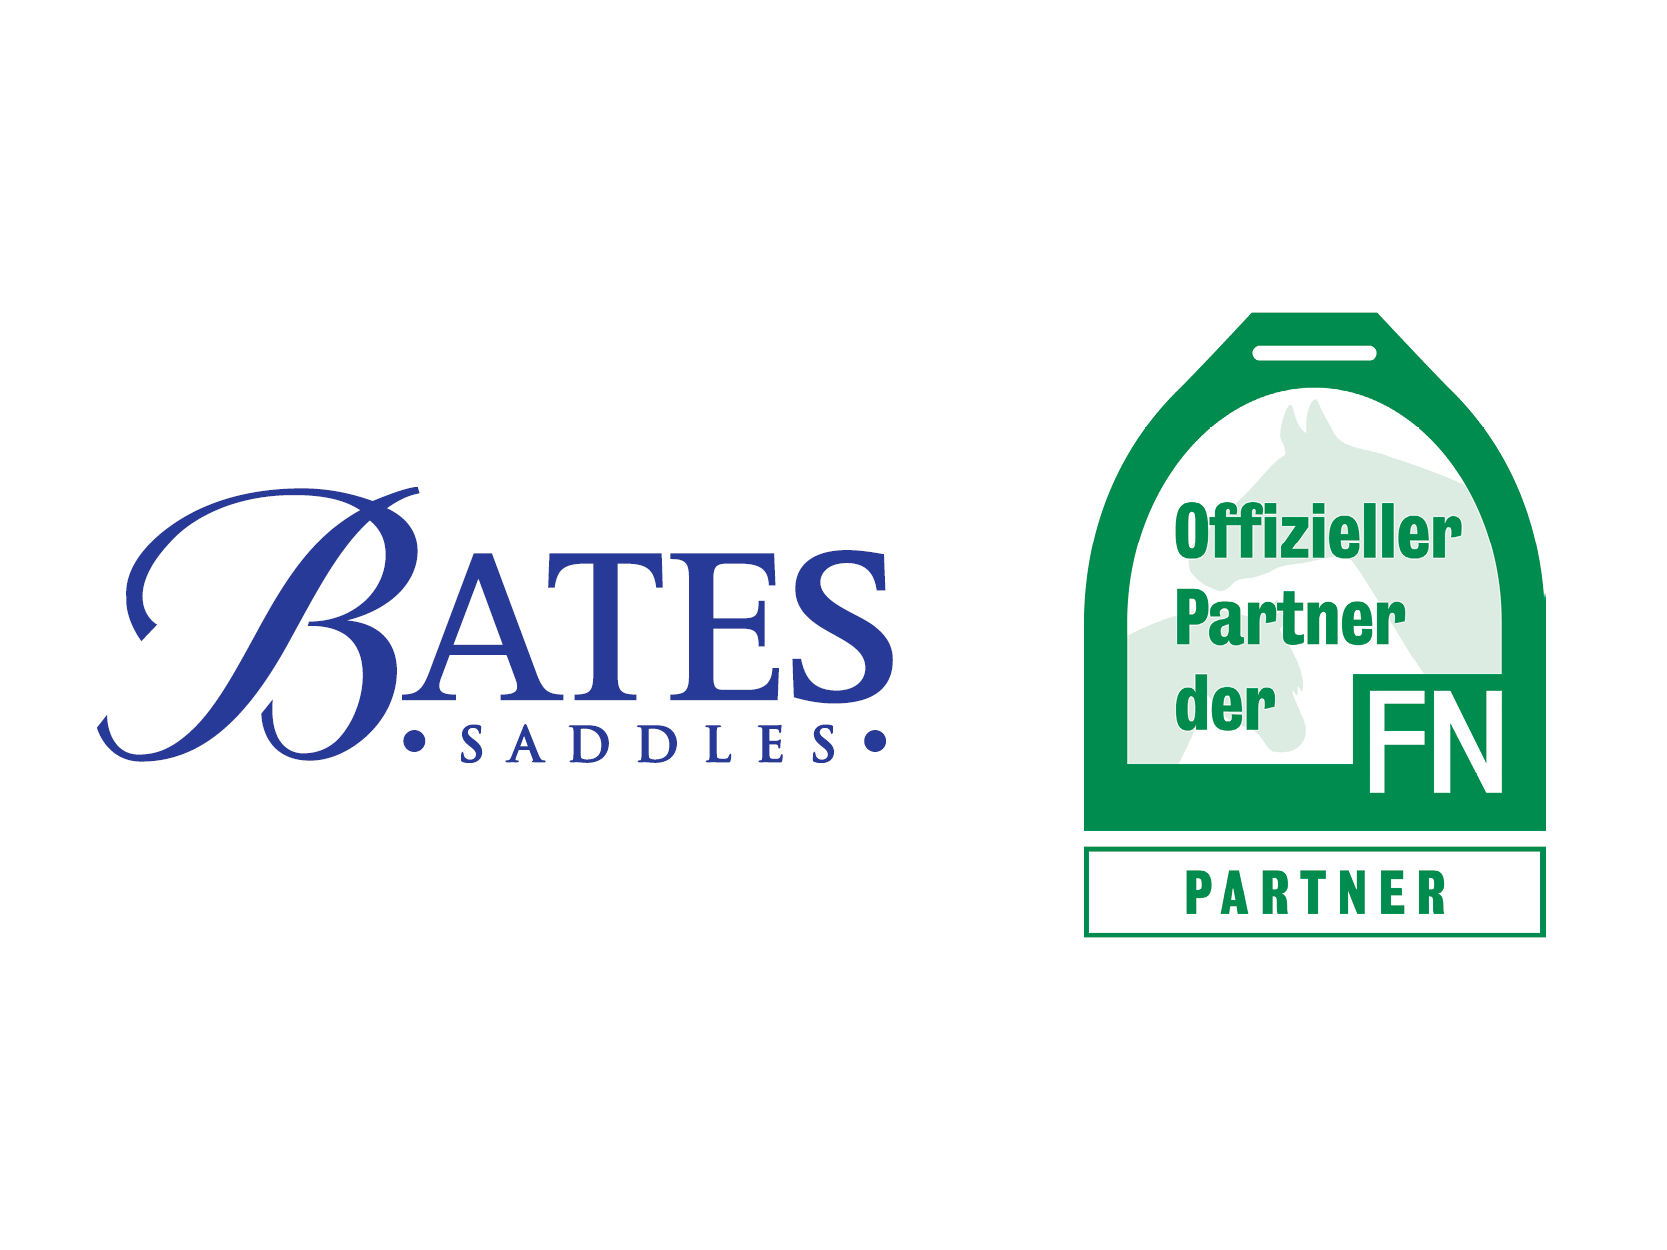 Official Partner of the German Equestrian Federation (FN)